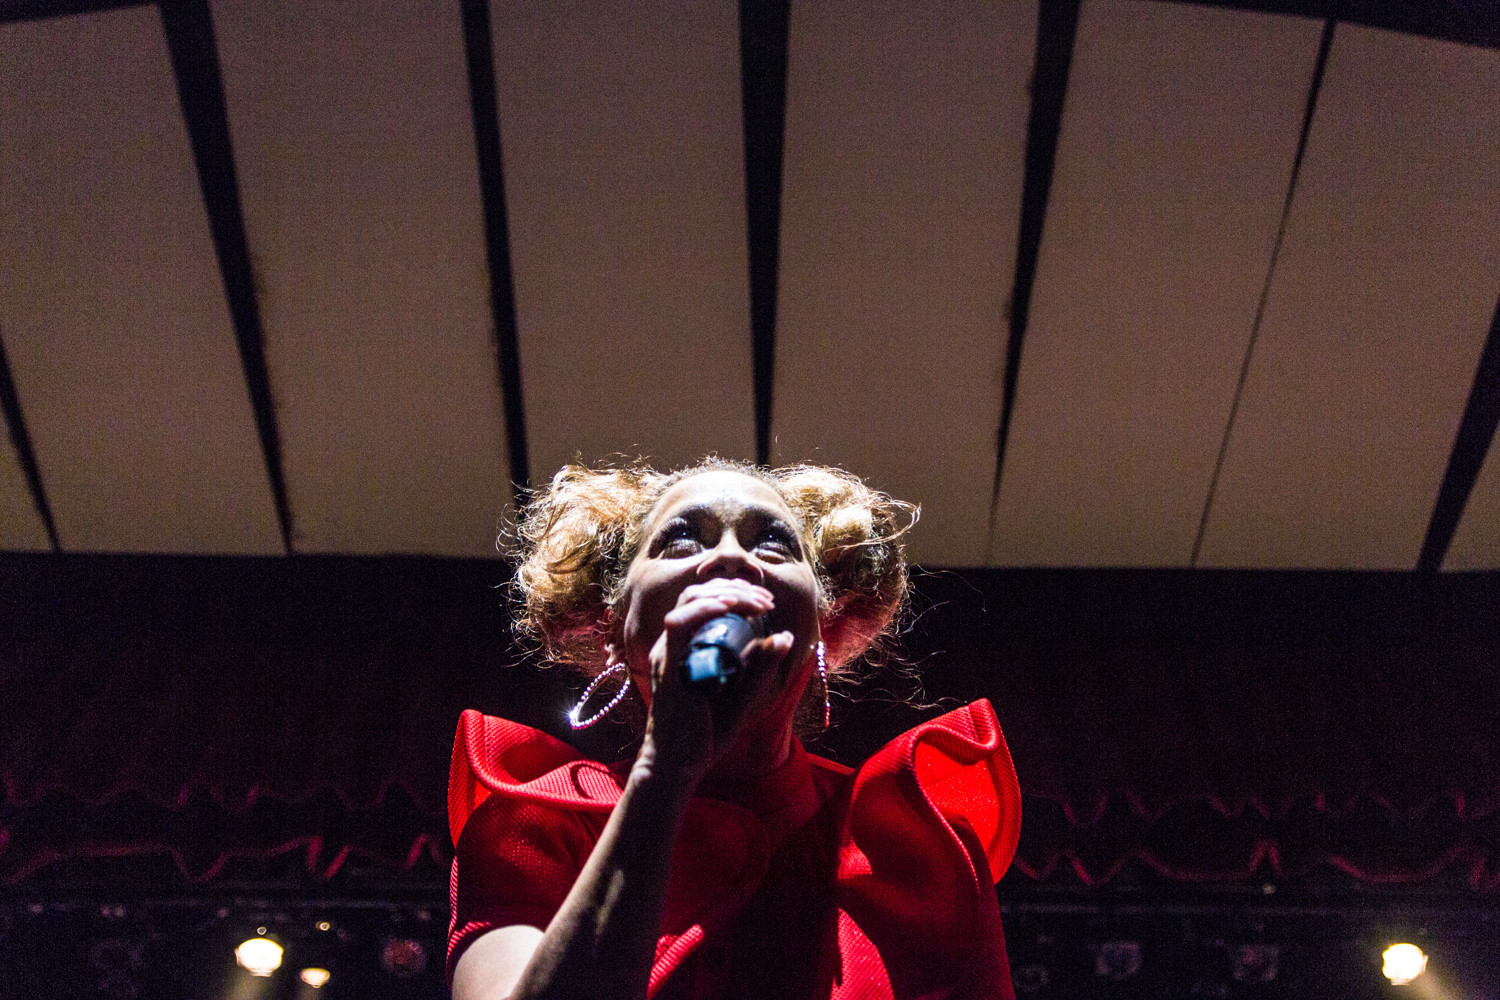 Betty Lebron of the freestyle music trio Sweet Sensation was one of several artists to take the stage during this year's Forever Freestyle at Lehman Center on March 3.